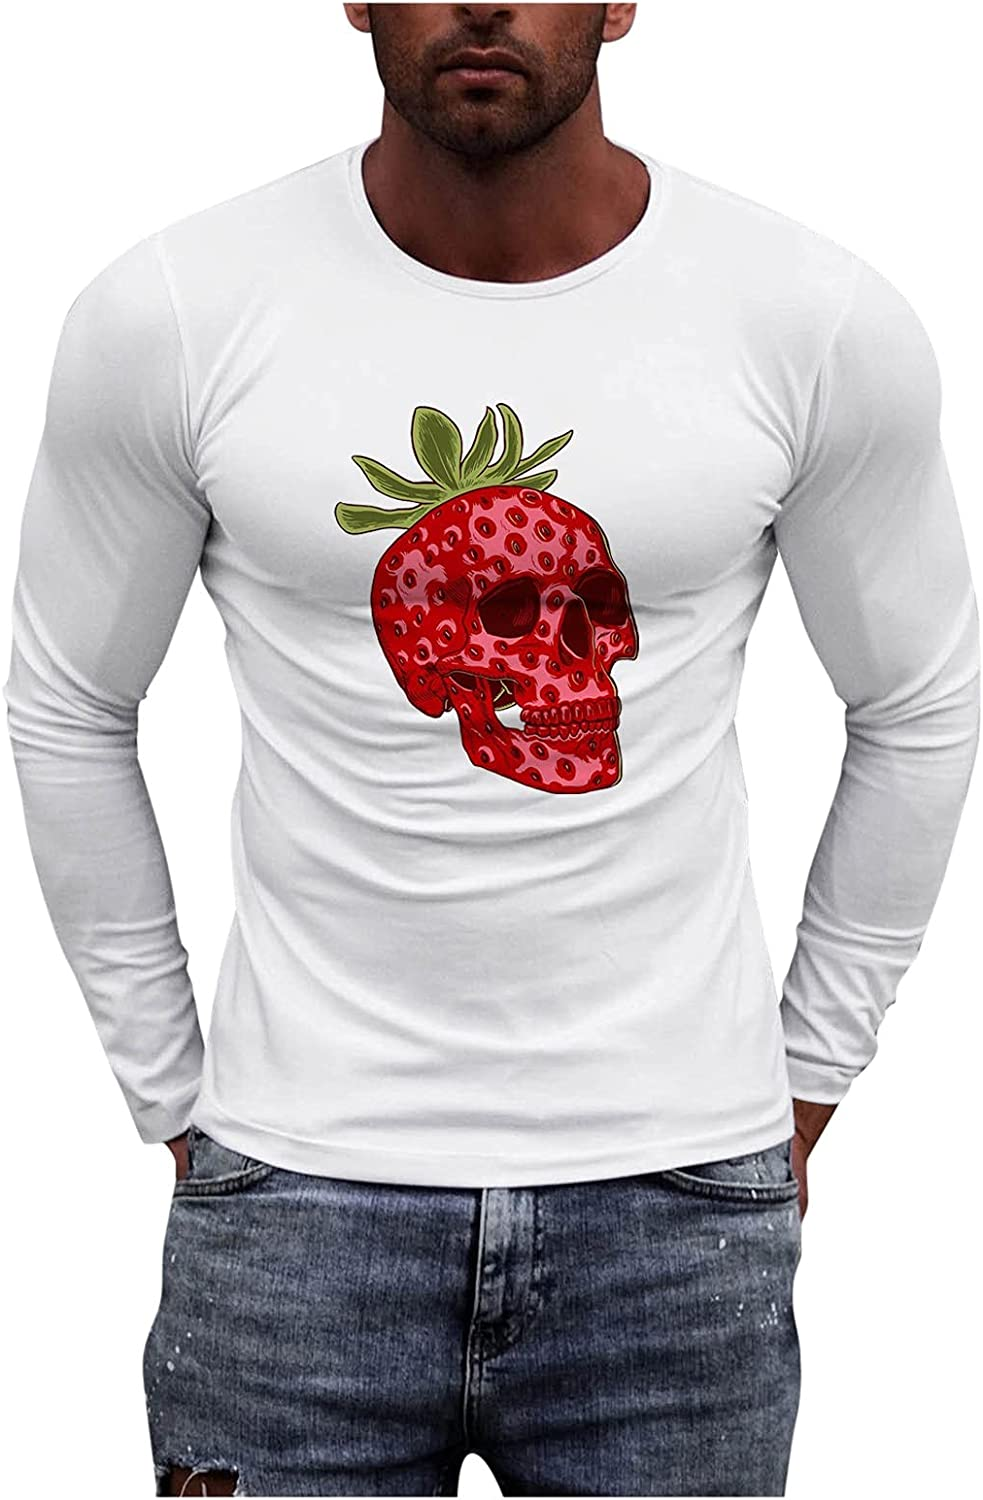 XXBR Long Sleeve T-shirts for Mens, Fall Graphic Printed Athletic Muscle Workout Sports Basic White Tee Casual Tops